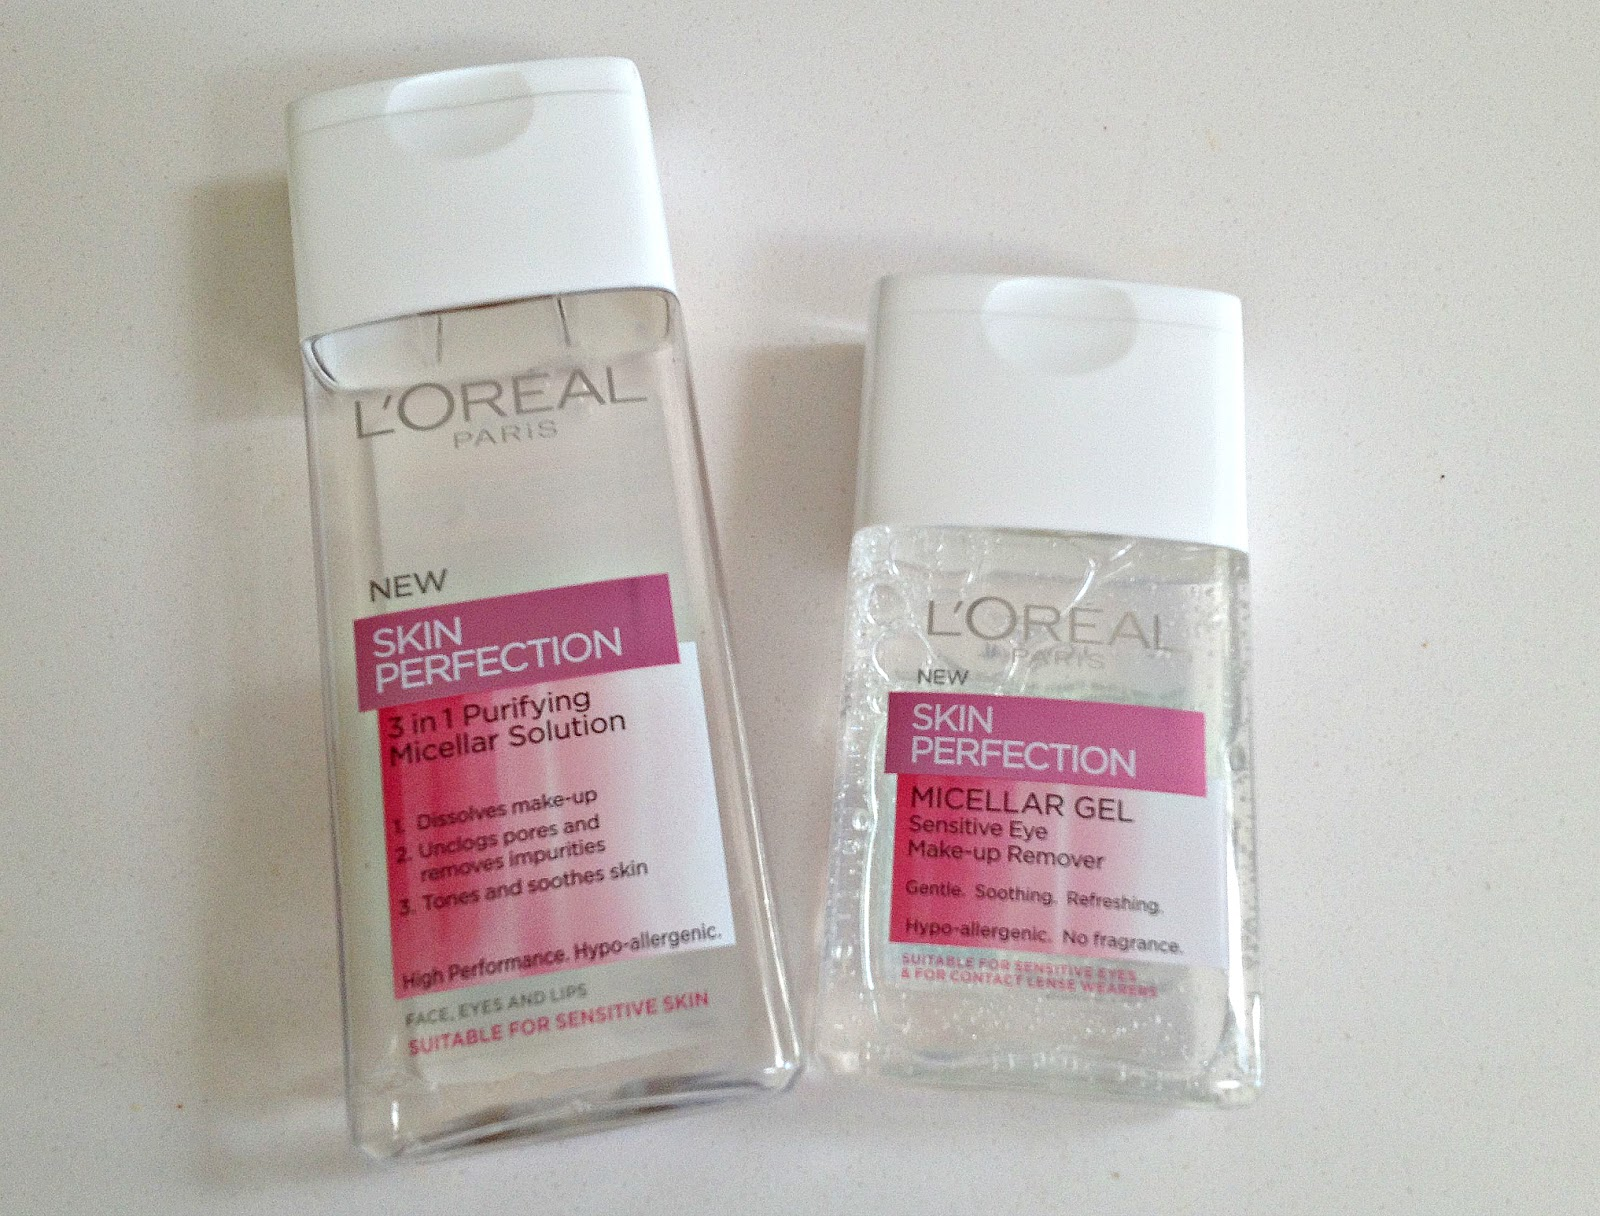 L'Oreal Skin Perfection Micellar Gel and Micellar Solution